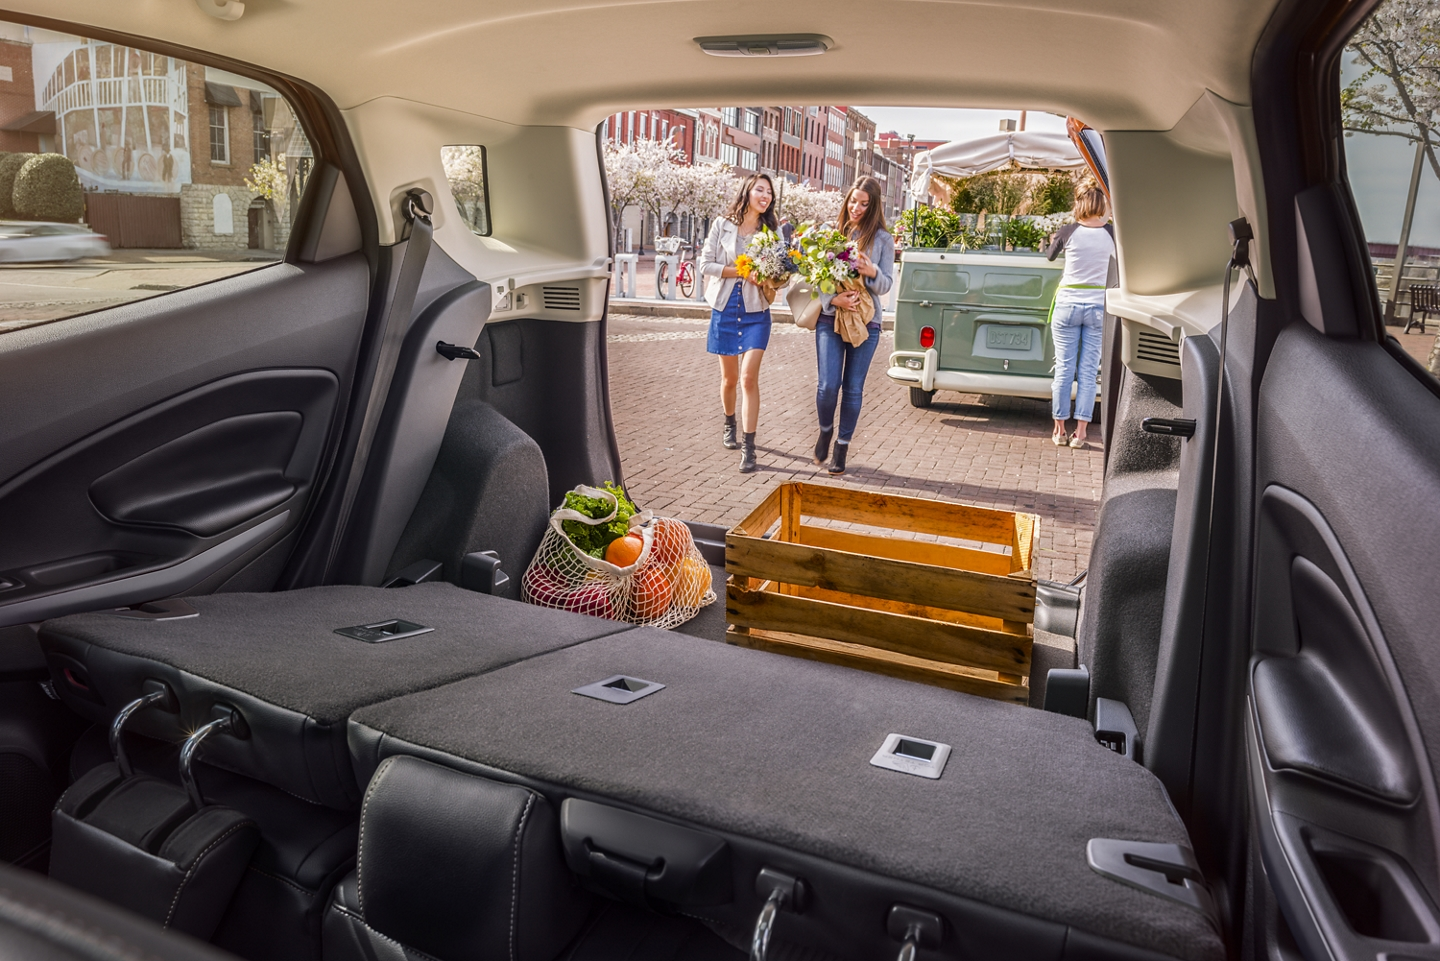 Cabin Space of the 2020 EcoSport